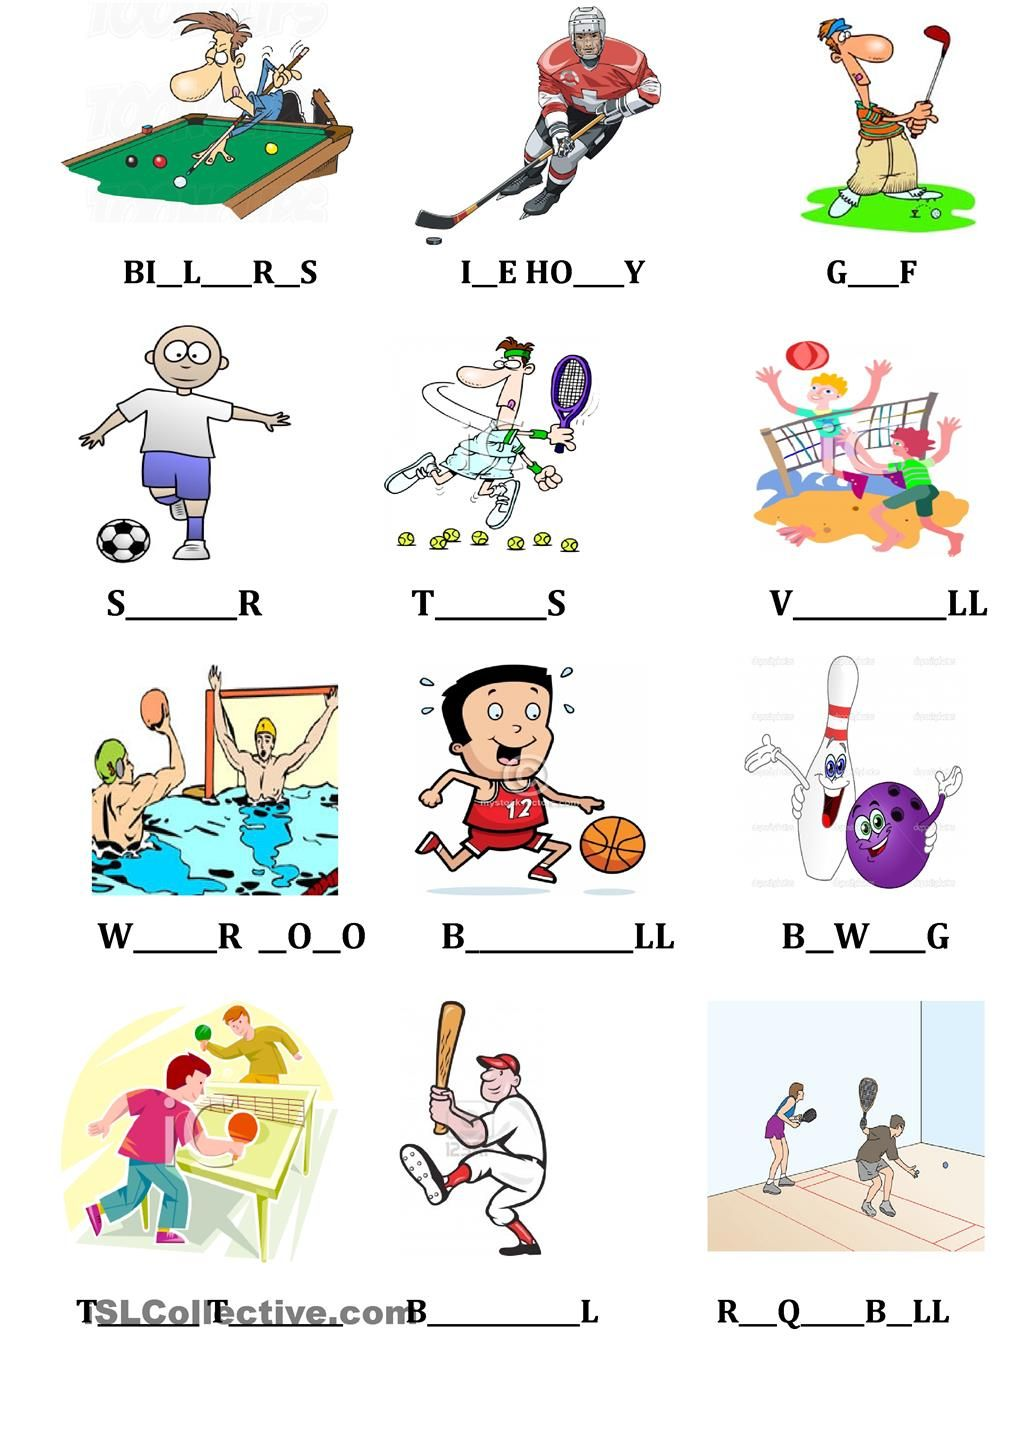 Sports & Camping Flashcard, spelling dictionary Sports